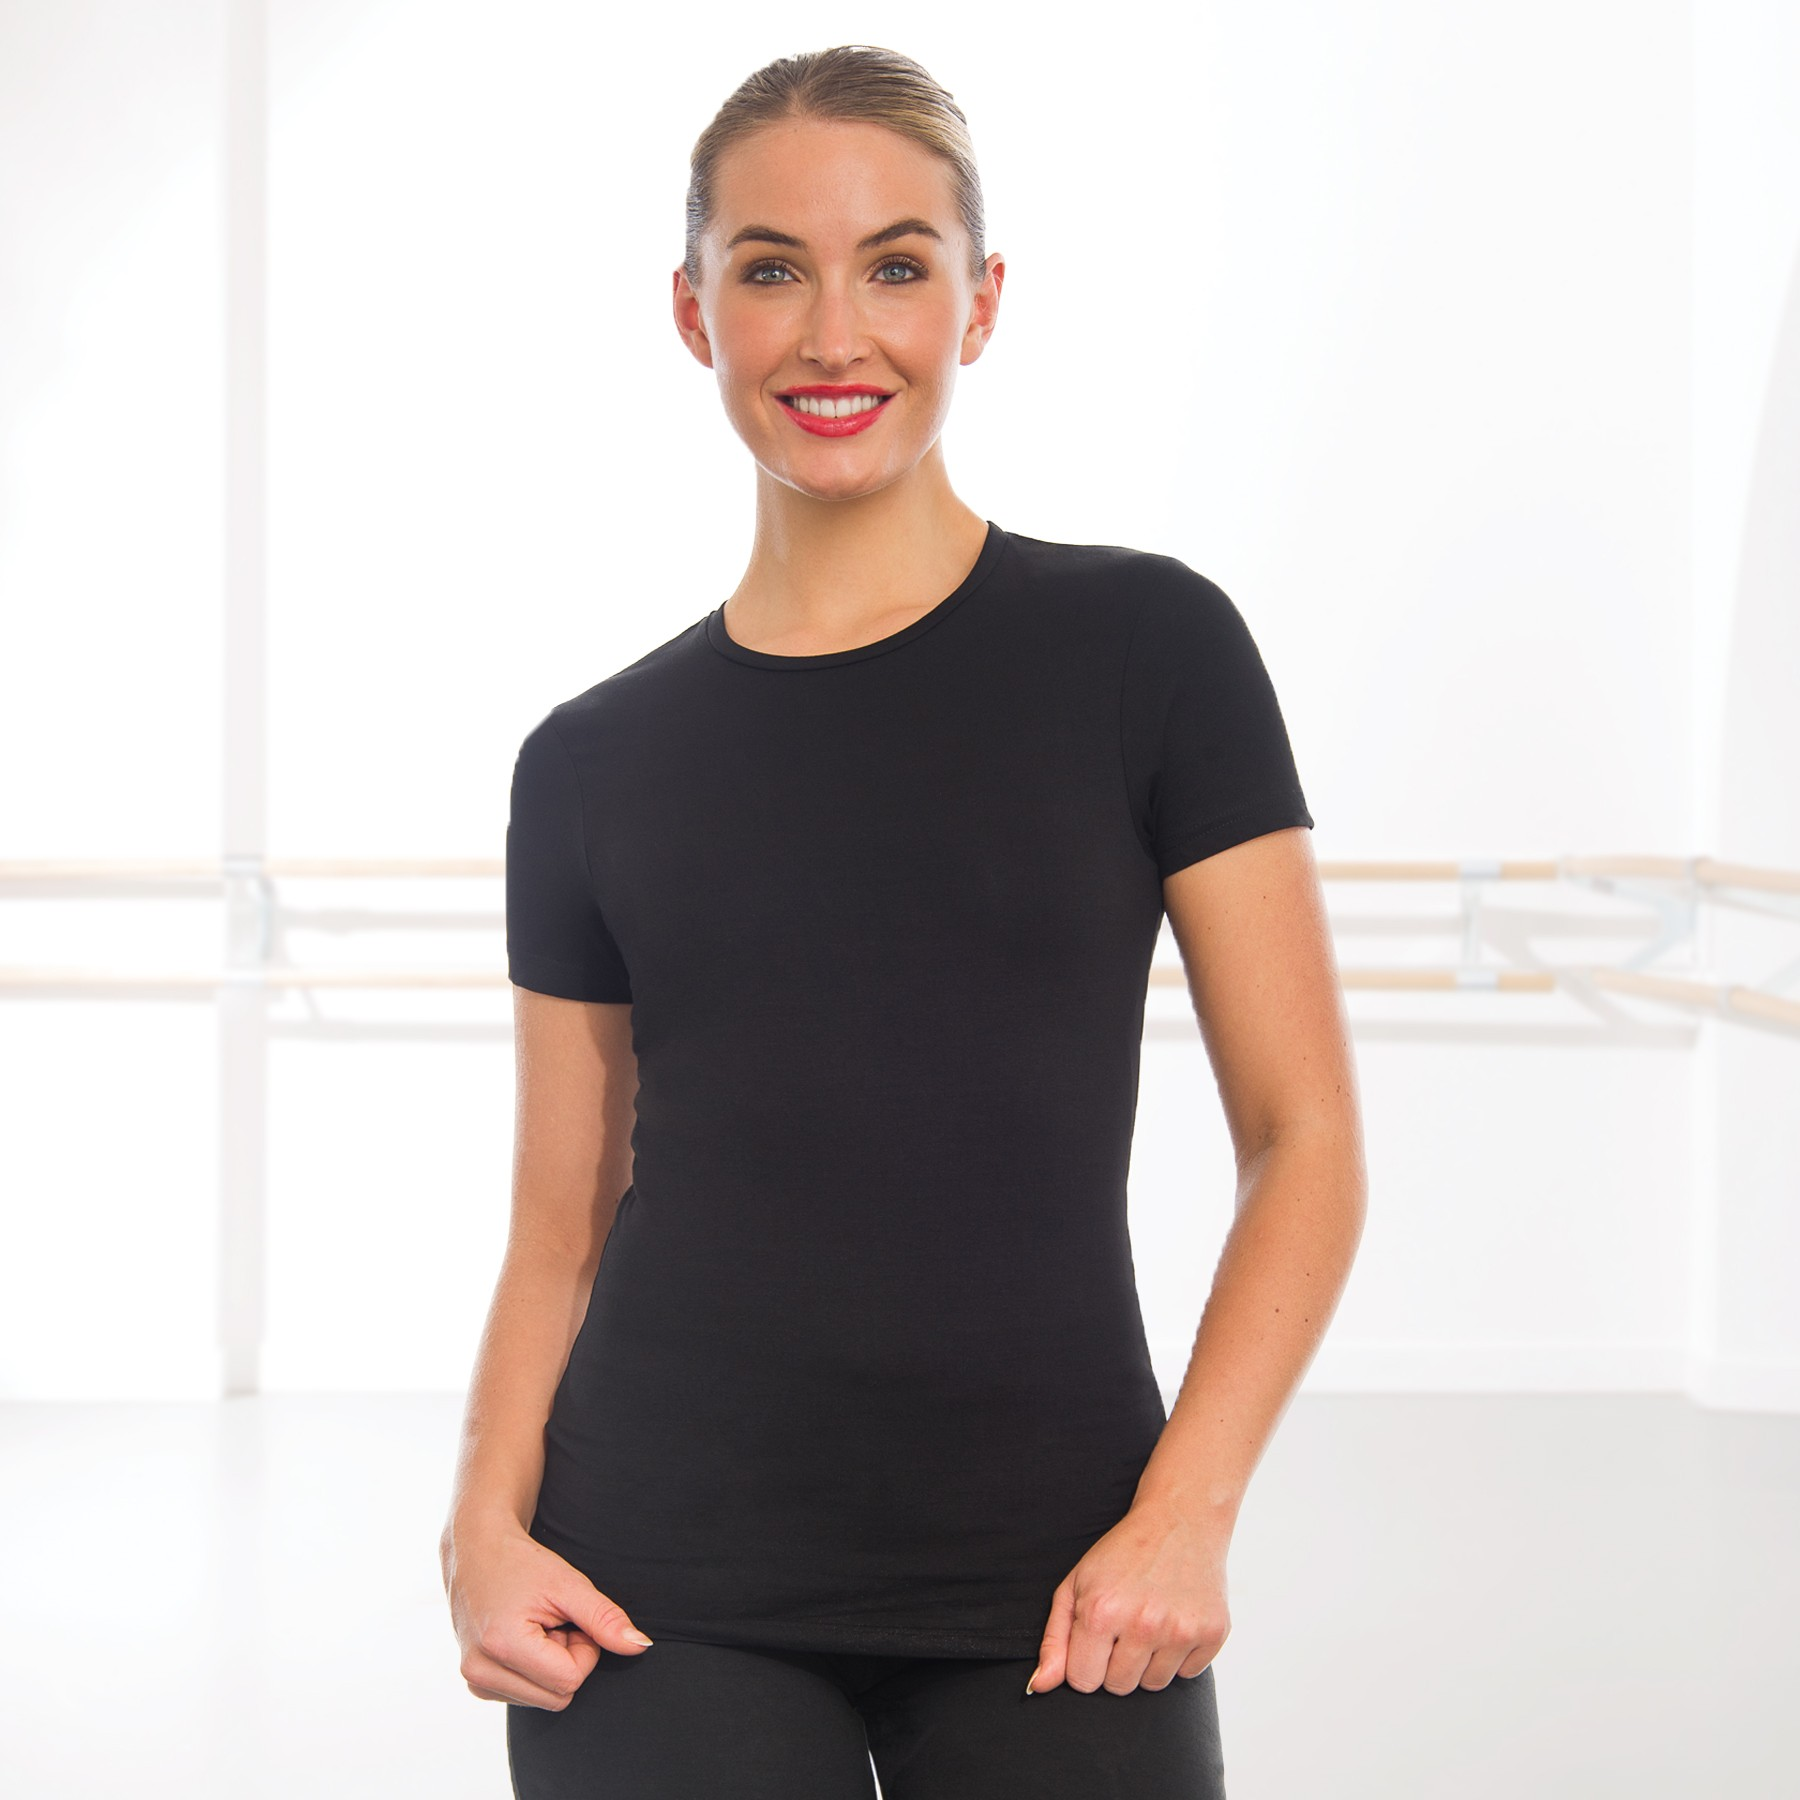 Skinnifit The Feel Good Stretch T-Shirt (Black) with Afonso School of Performing Arts Logo